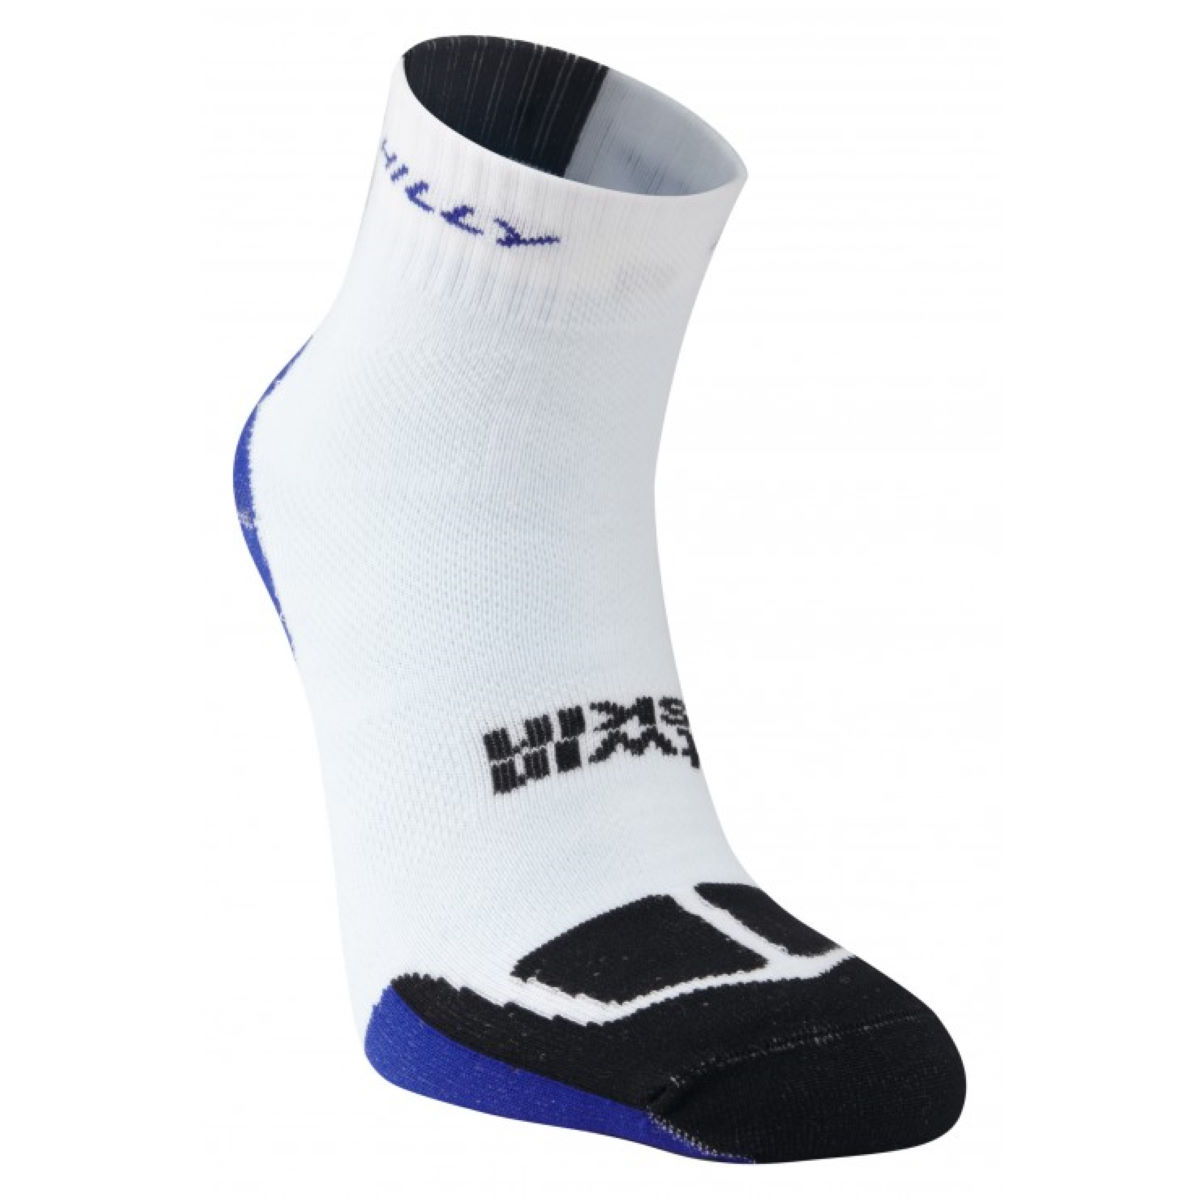 Chaussettes Hilly Twin Skin PE14 - S White/Blue/Black